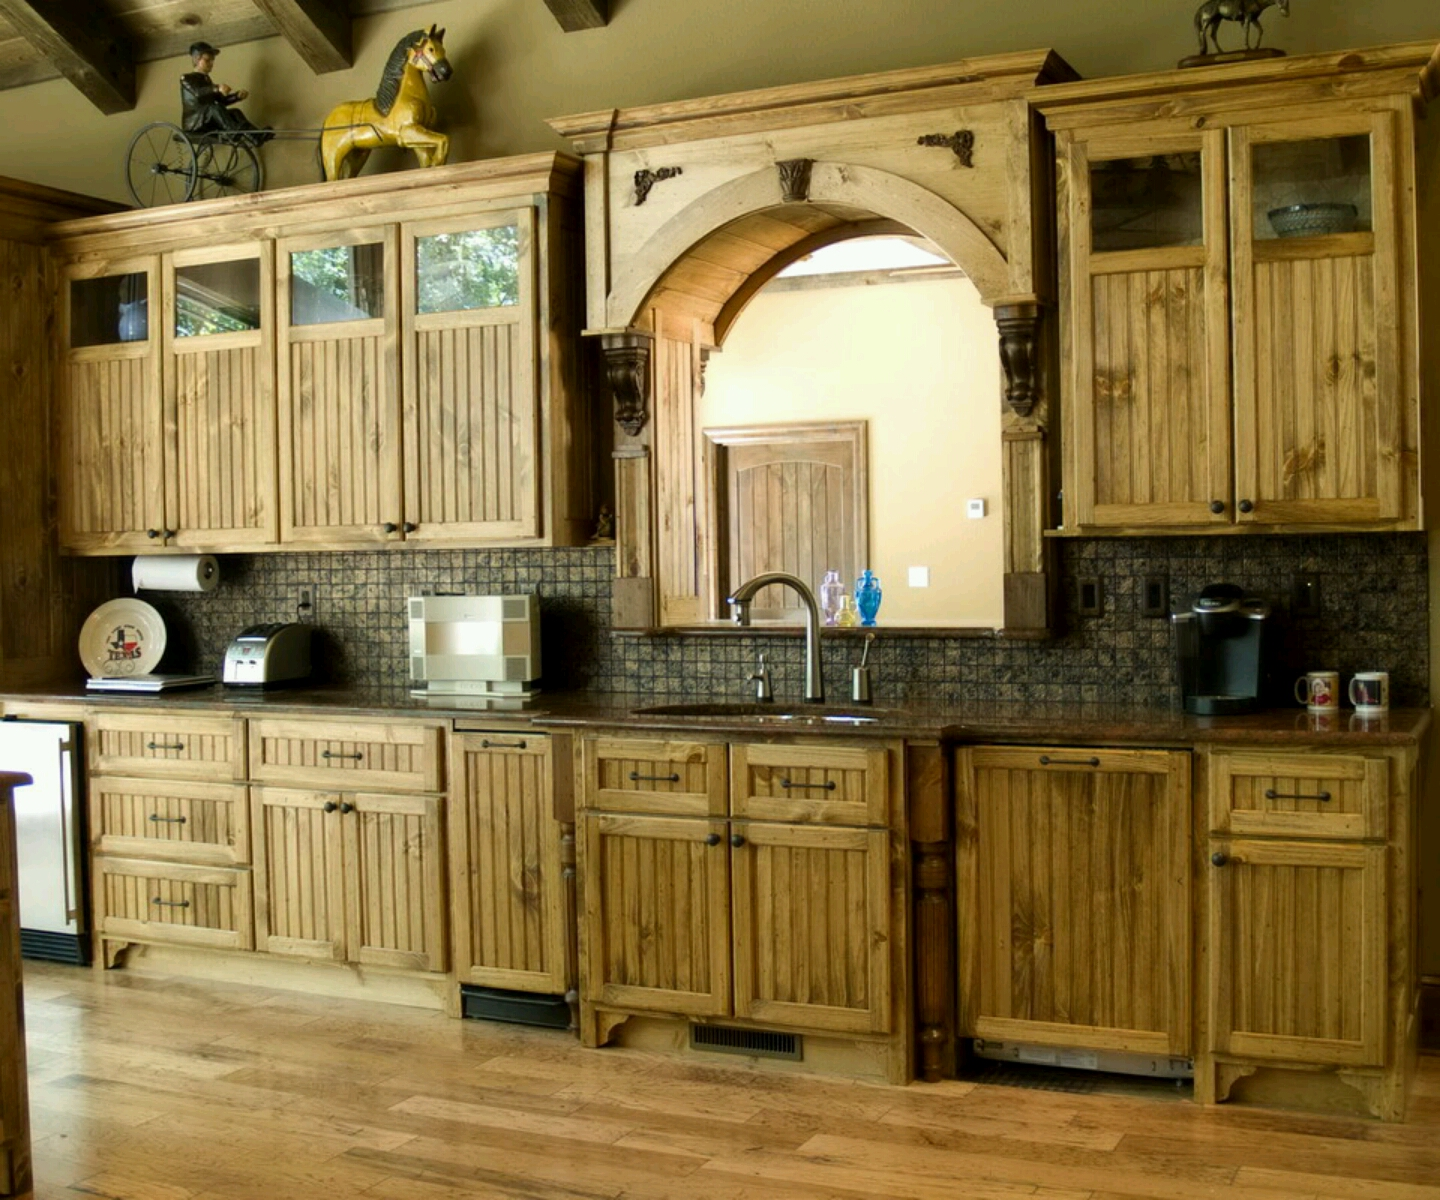 Modern wooden kitchen cabinets designs furniture gallery for Wood kitchen cabinets